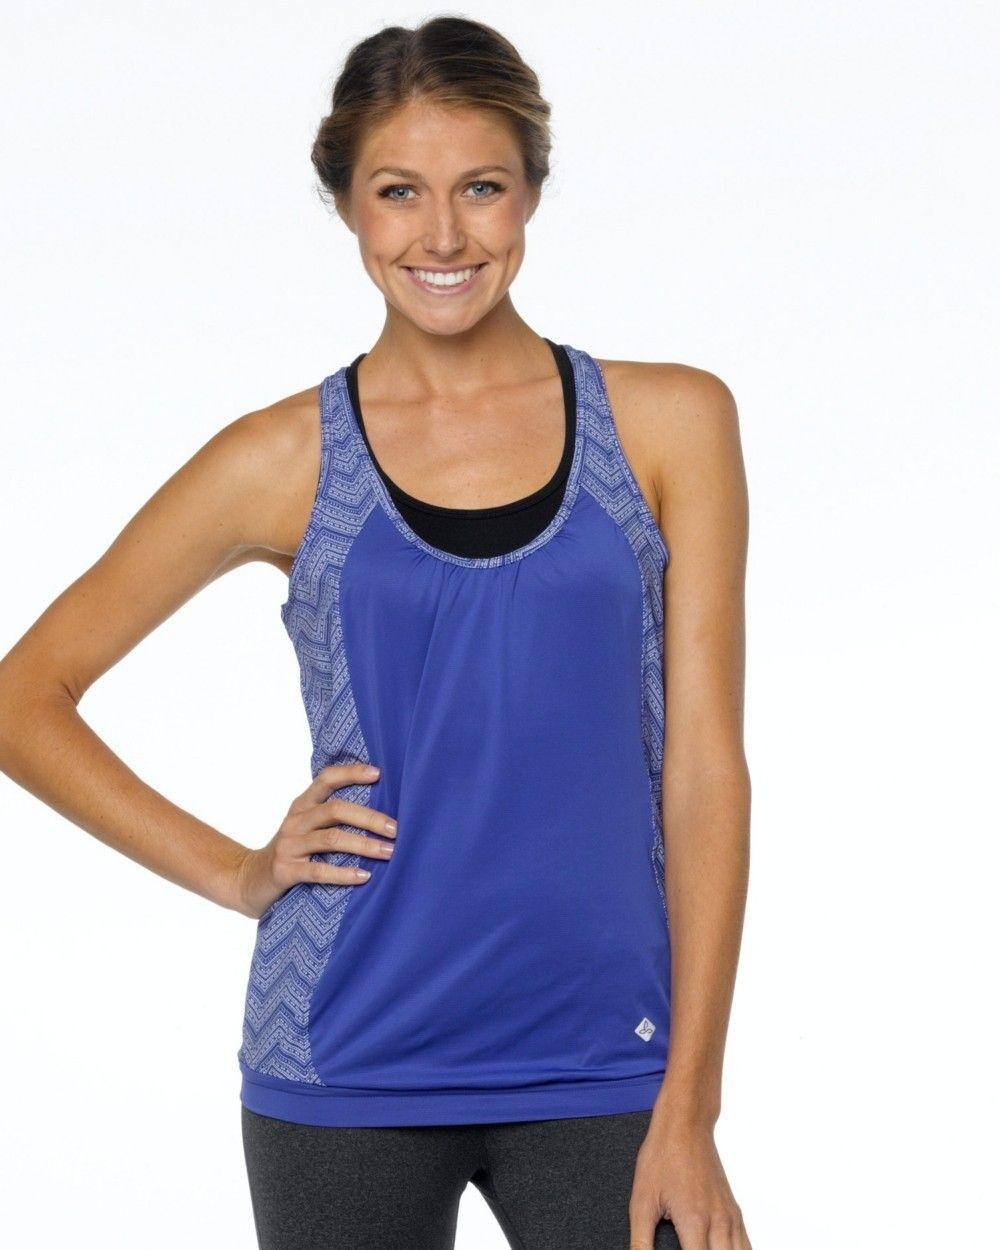 2015 Prana Activewear Gia Tank in Sail Blue at B-Fly Activewear: http://www.bflyactivewear.com